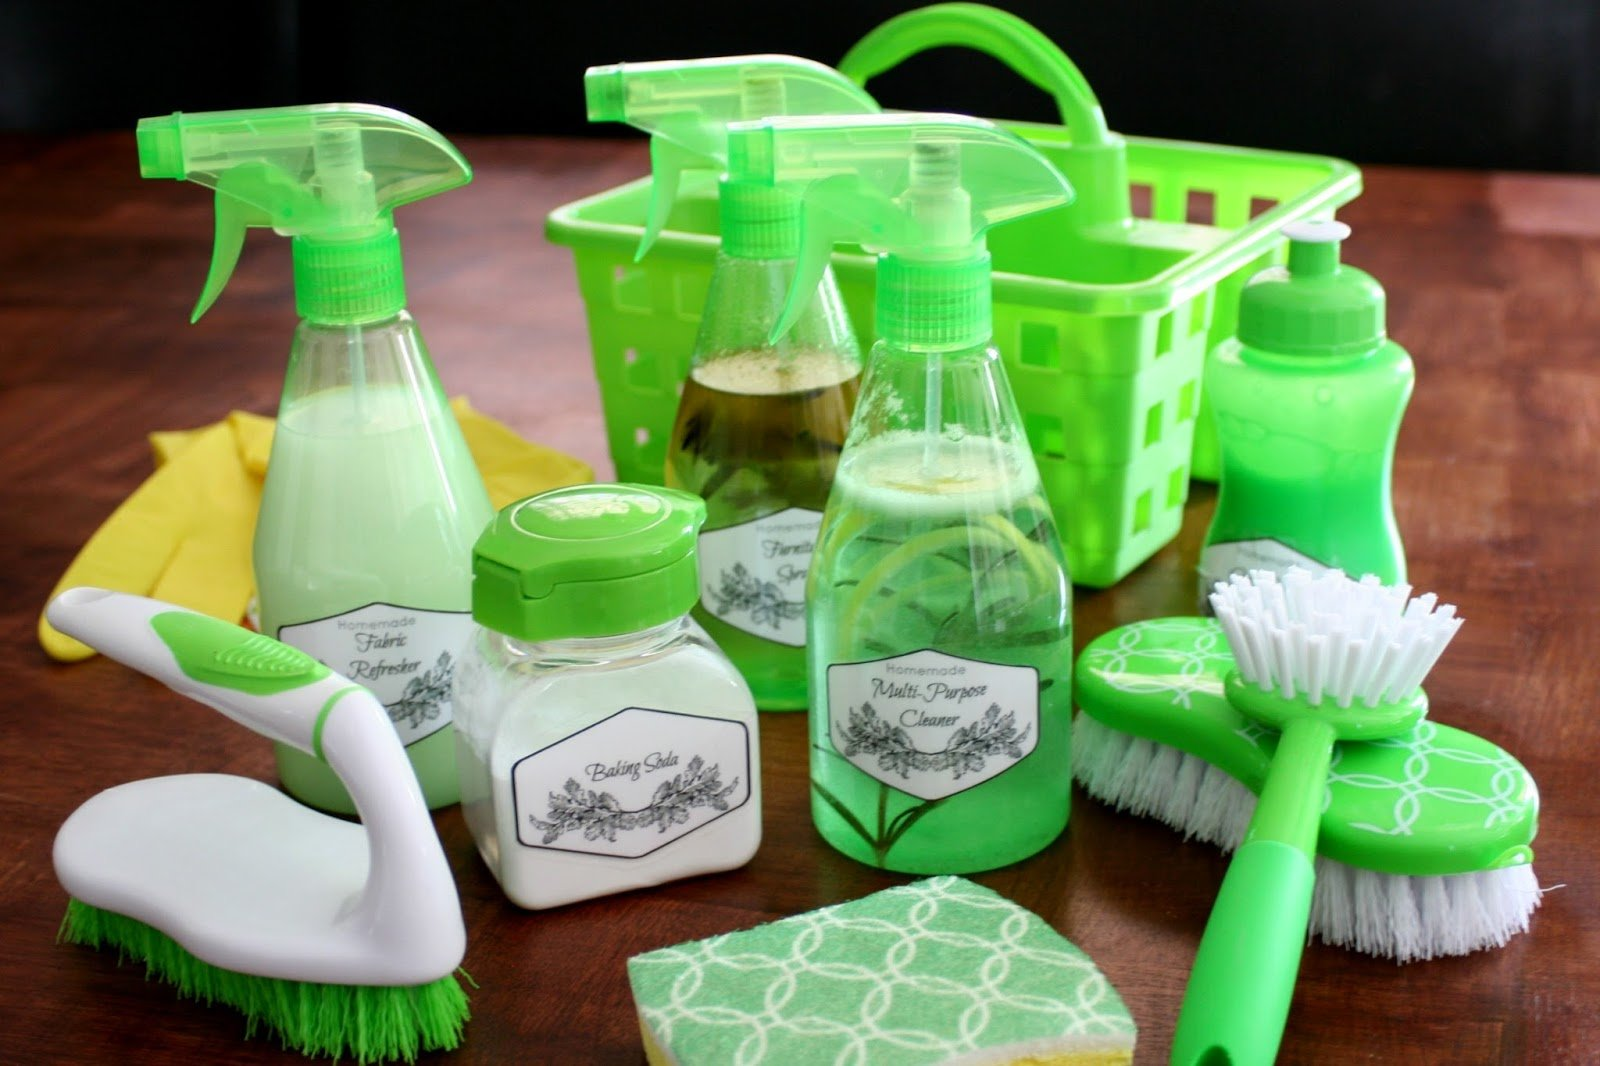 cleaning-kit-10.jpg